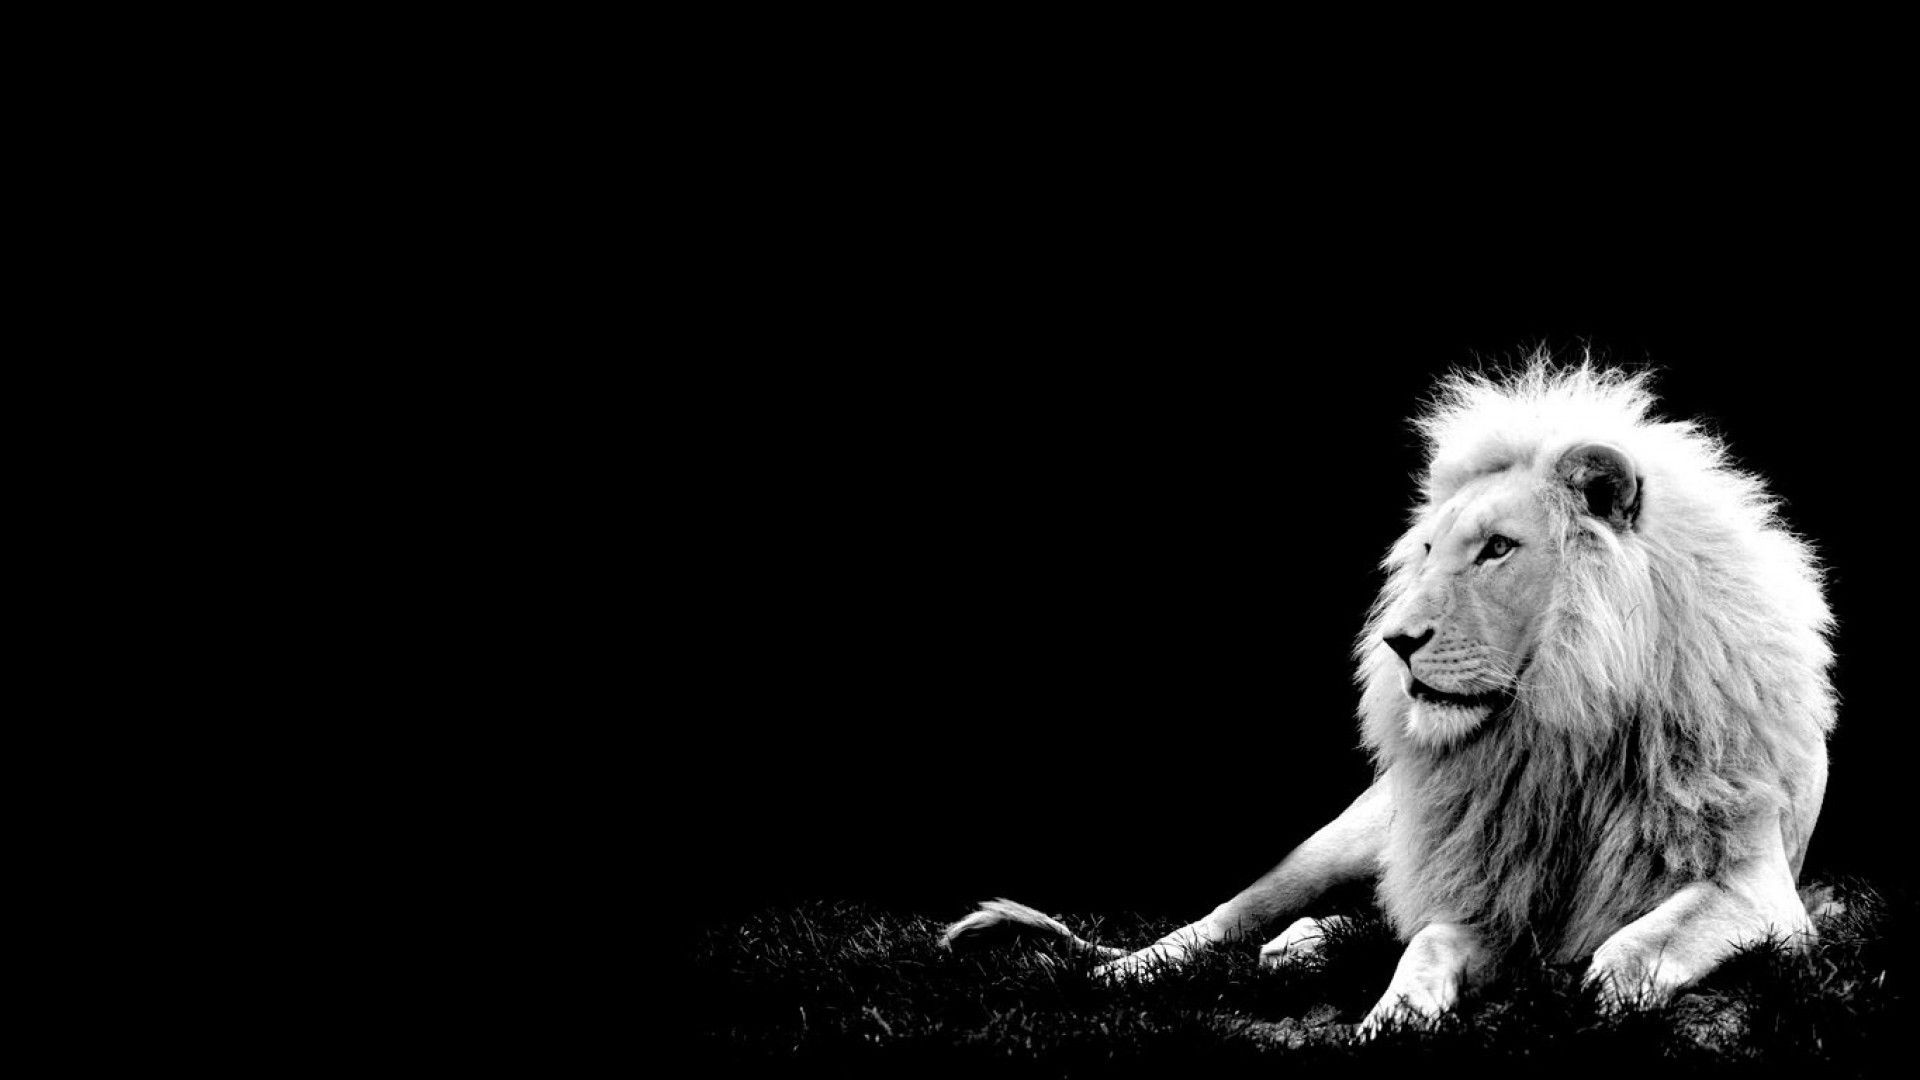 1920x1080 Lion Wallpaper HD Pictures One HD Wallpaper